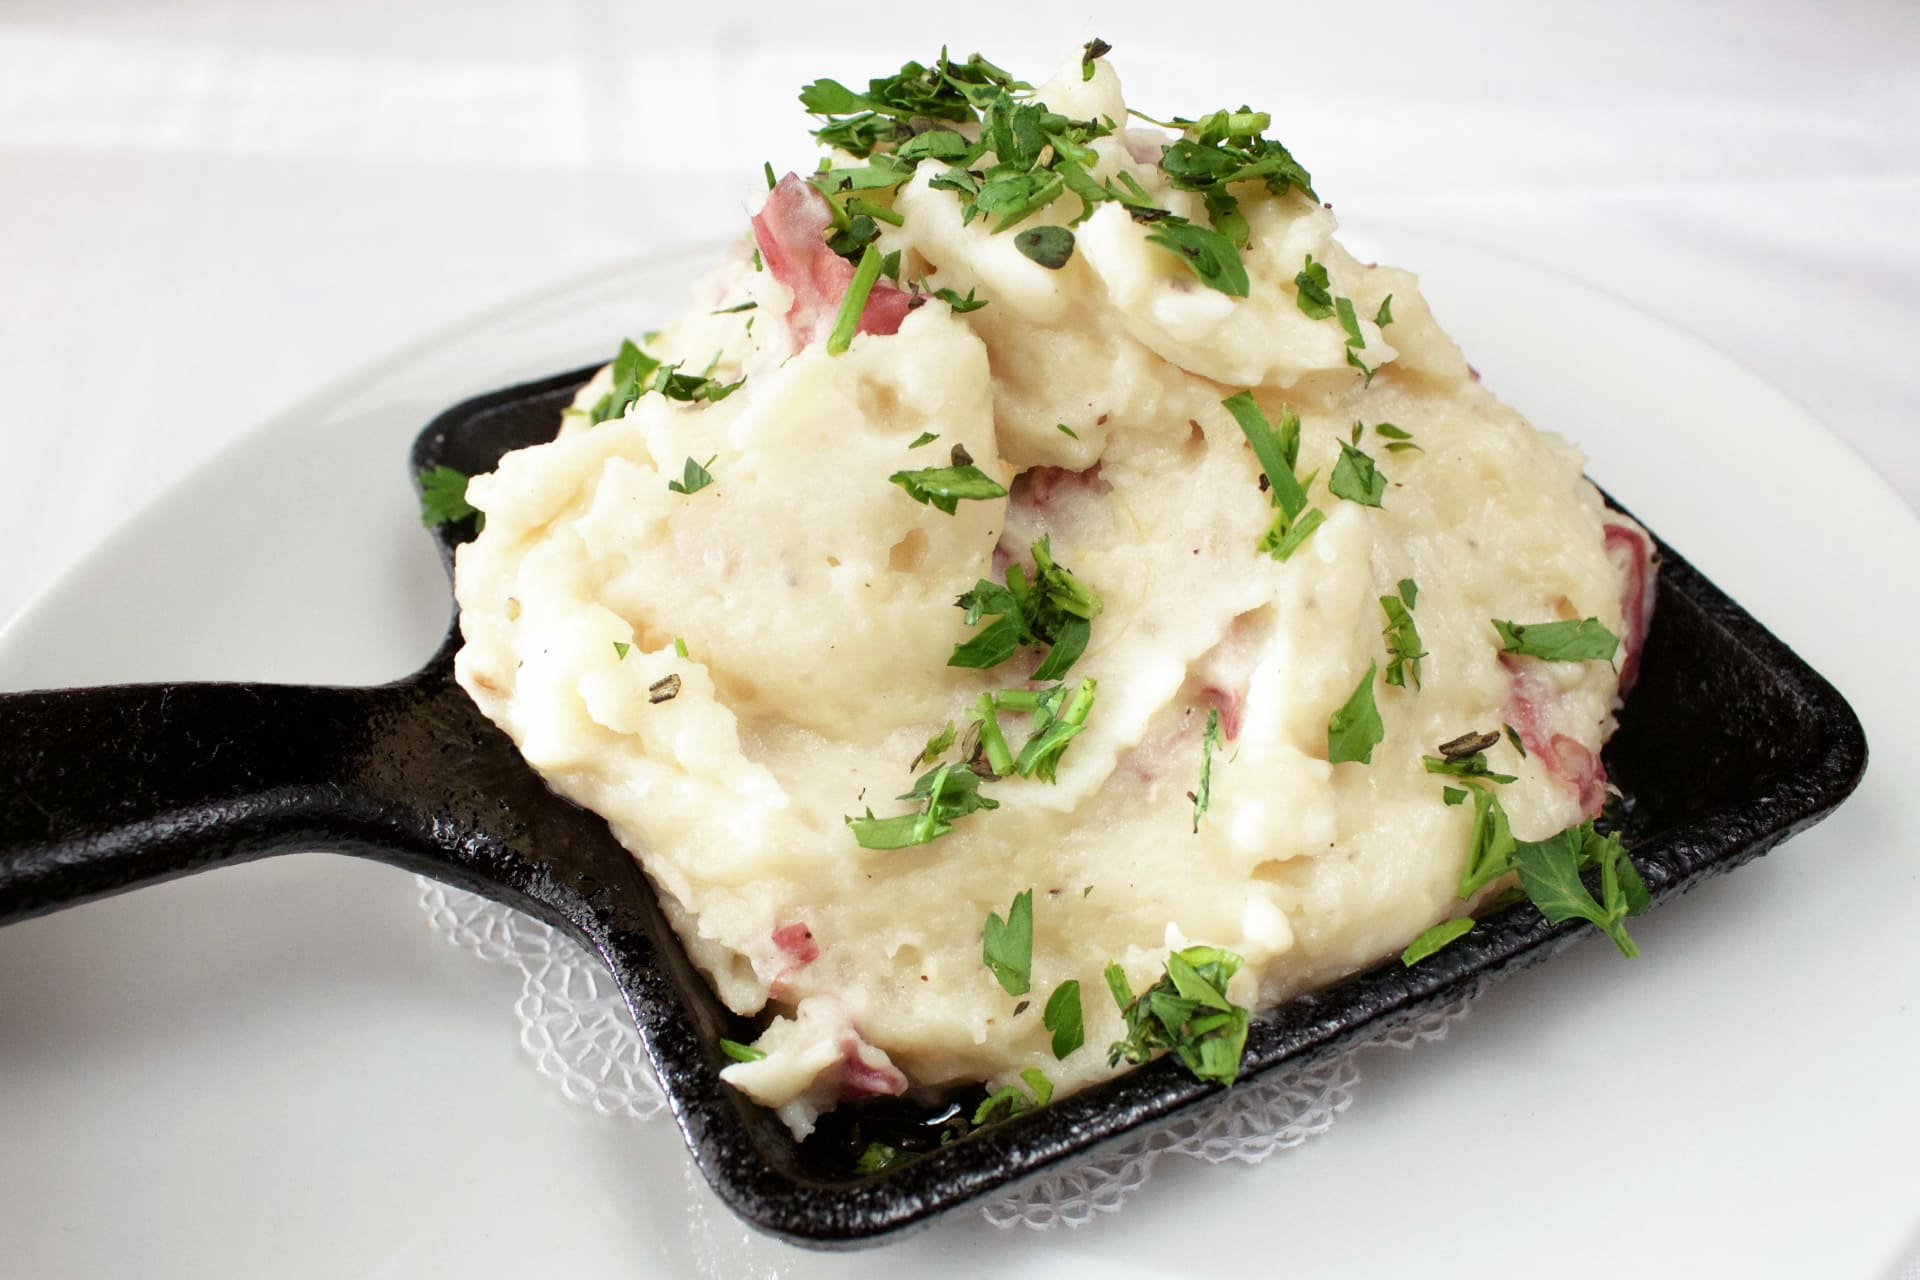 Melted Garlic & Creme Fraiche Mashed Potatoes